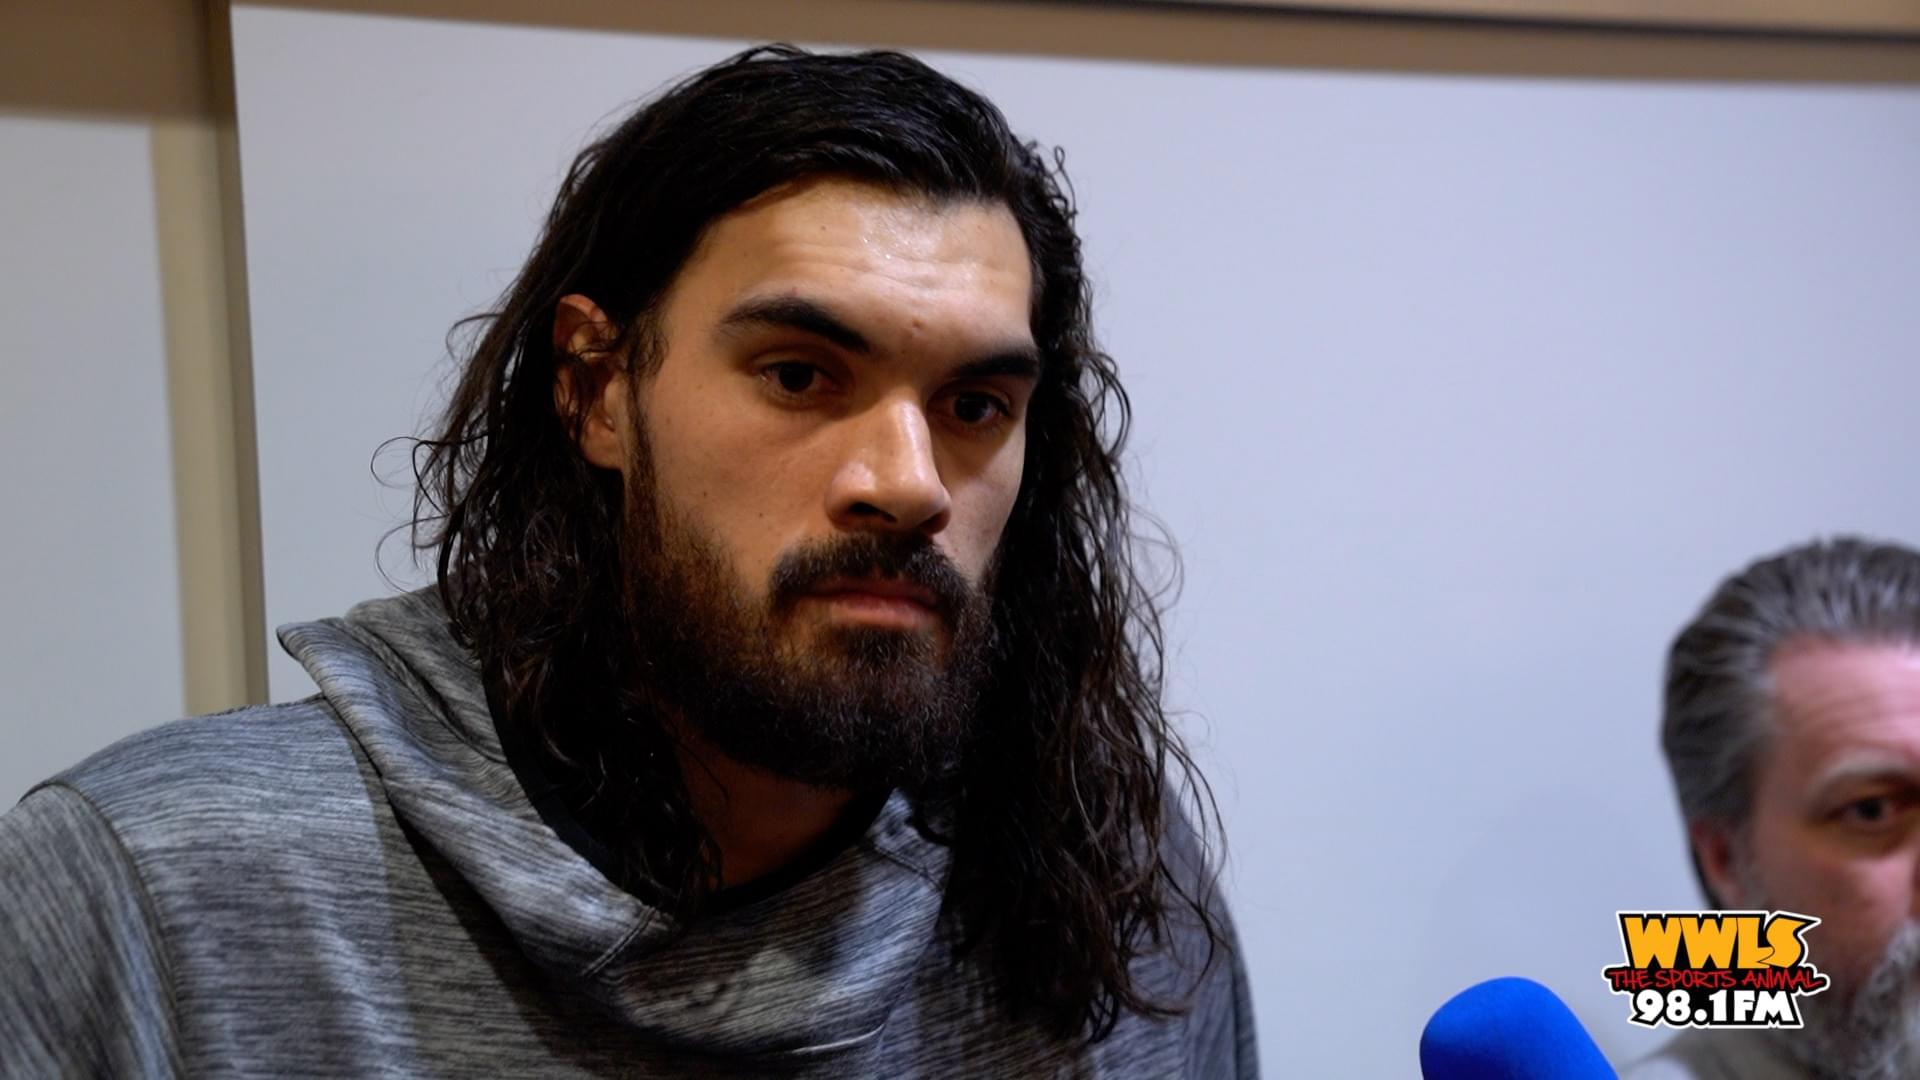 THUMBNAIL_20181114-Steven Adams Full